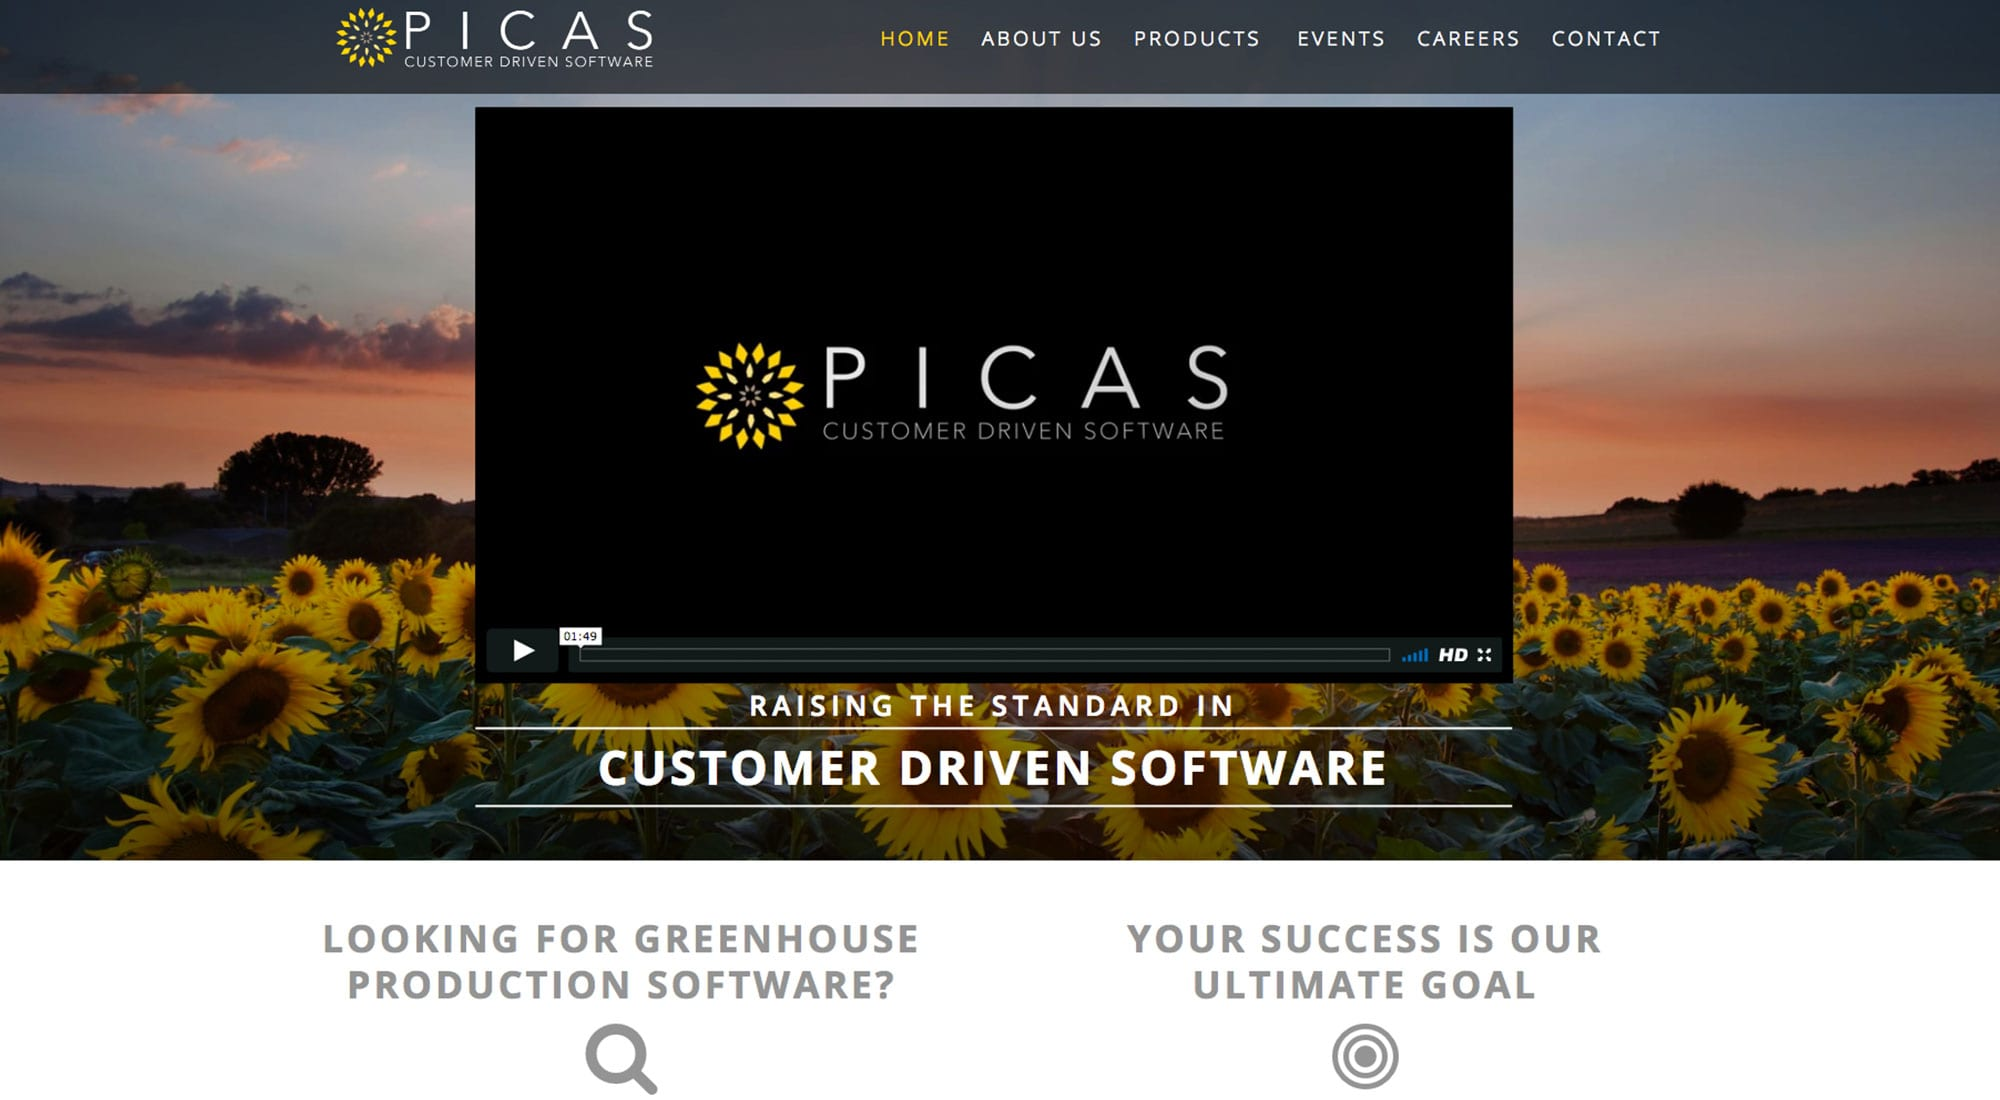 PICAS software website design by Pixelvine Creative